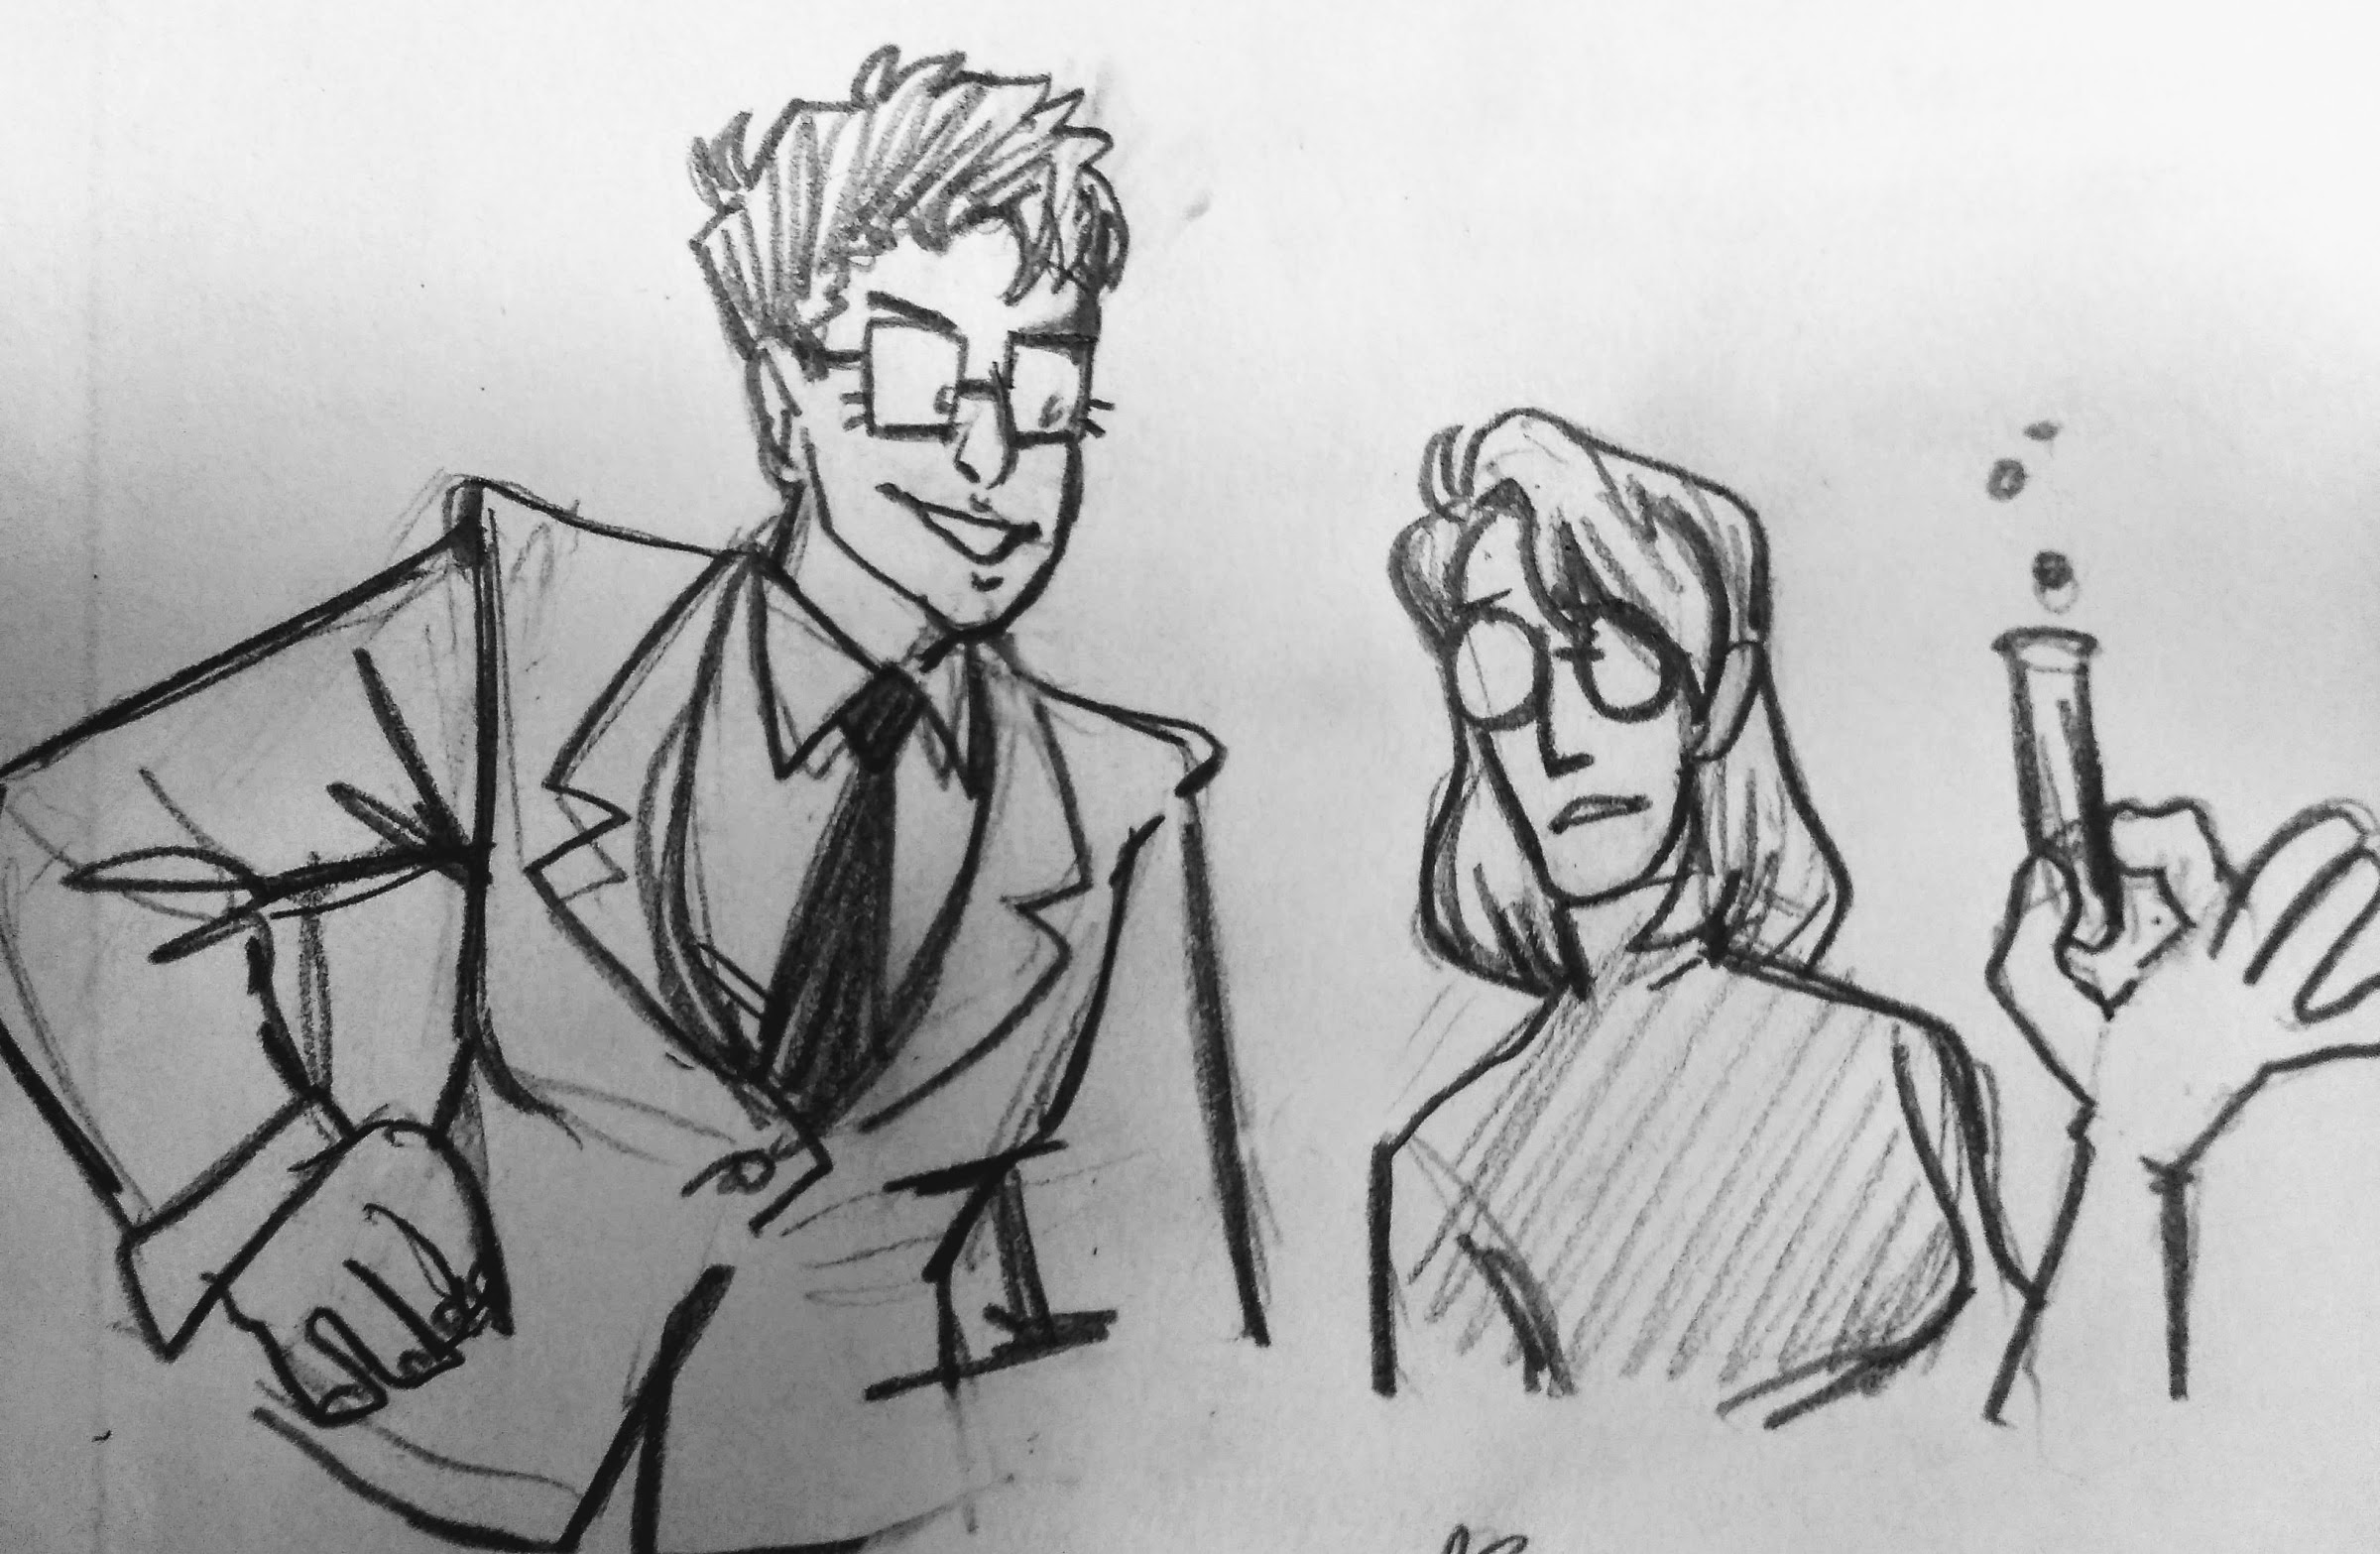 X and Y as girls. Y still wears a suit and tie. X has long hair and goggles and a tube of something mysterious.